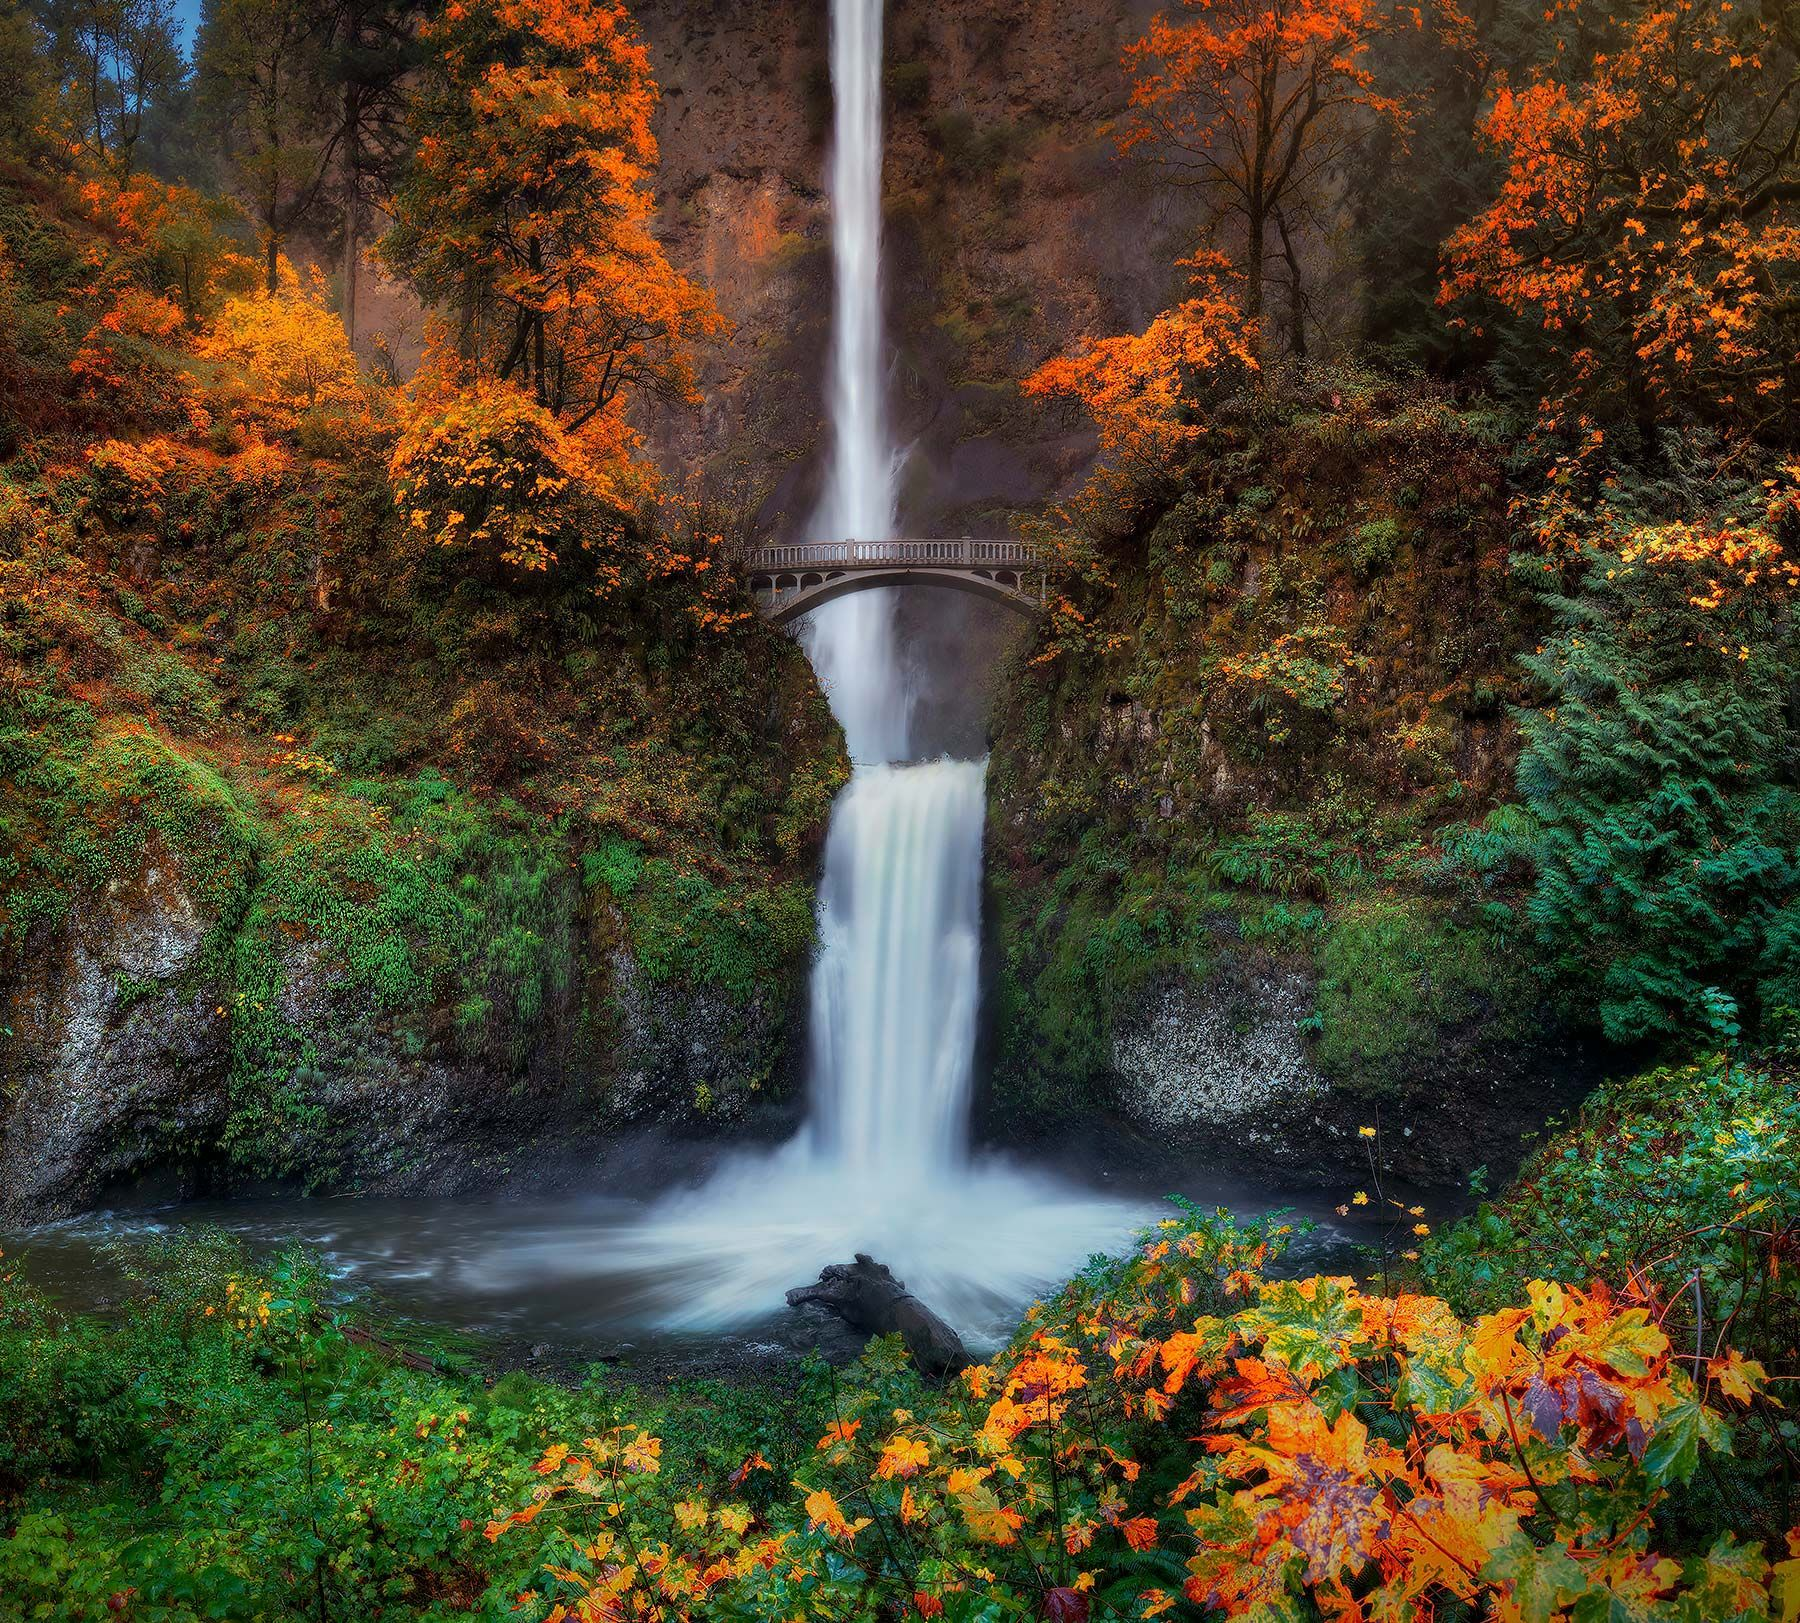 Places To Visit In The Fall In Usa: Multnomah Falls And Benson Bridge In Oregon